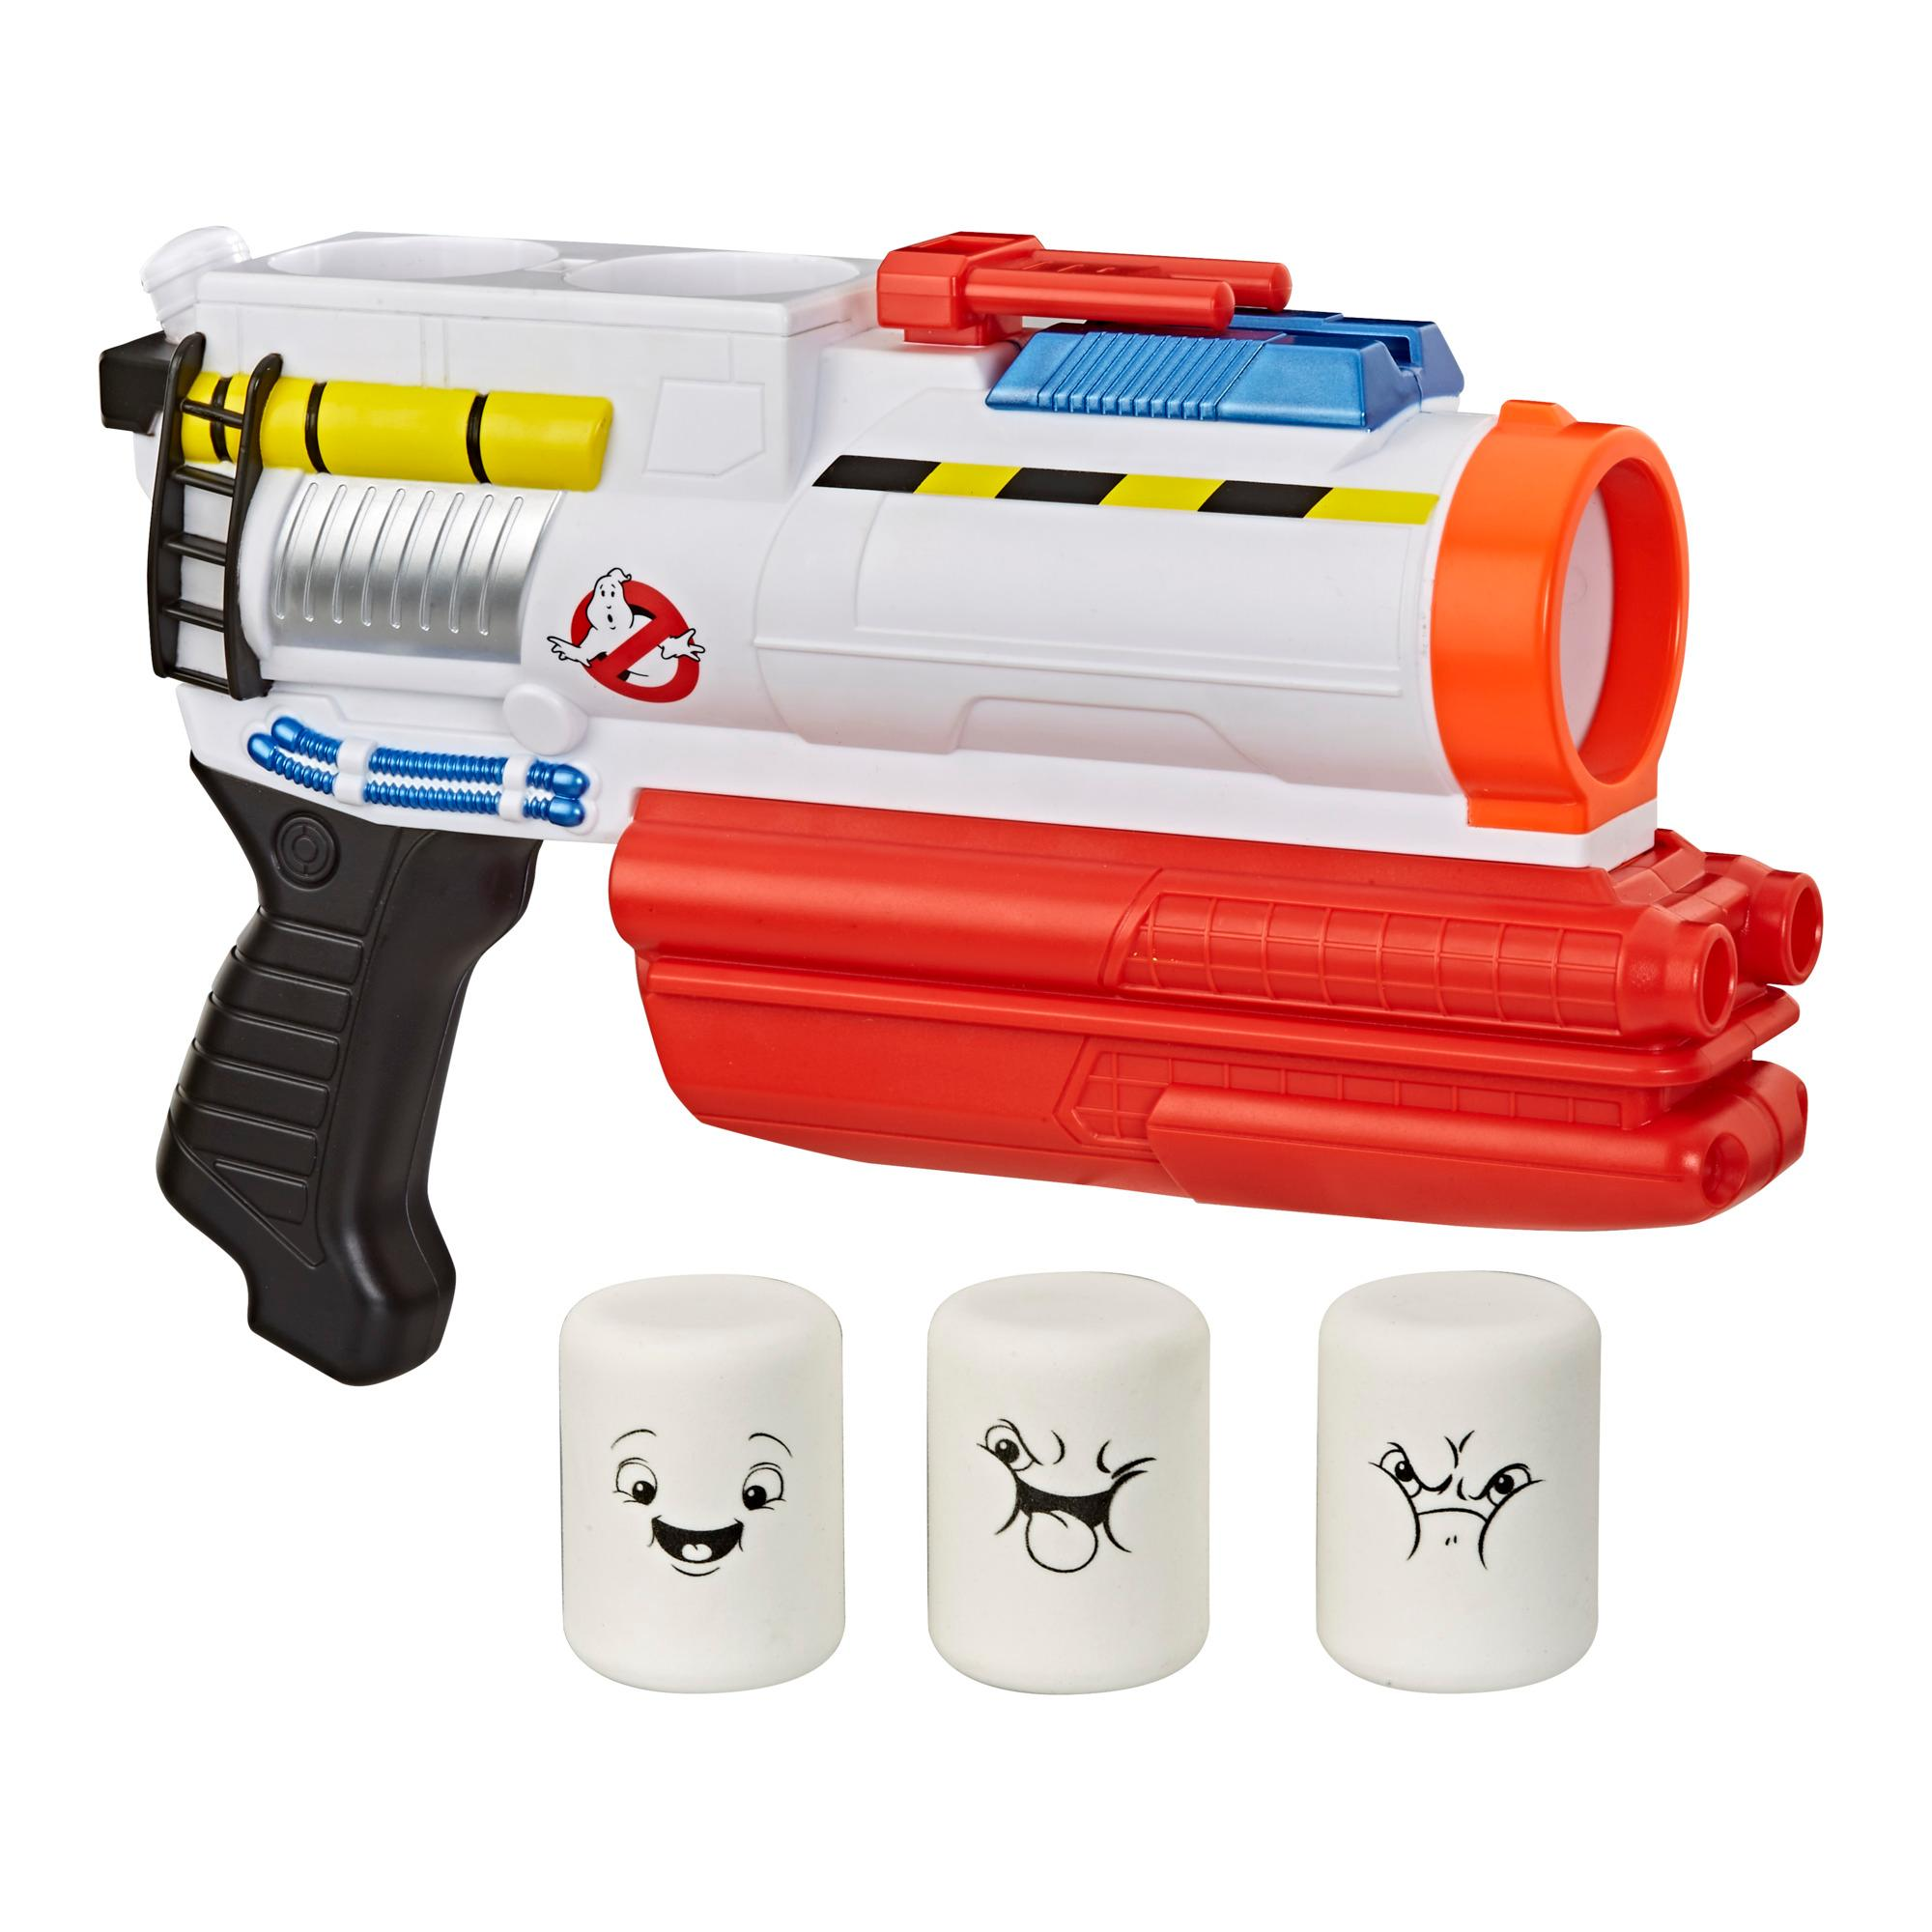 Ghostbusters Mini-Puft Popper Blaster Action Ghostbusters: Afterlife Roleplay with 3 Projectiles, for Kids Ages 8 and Up